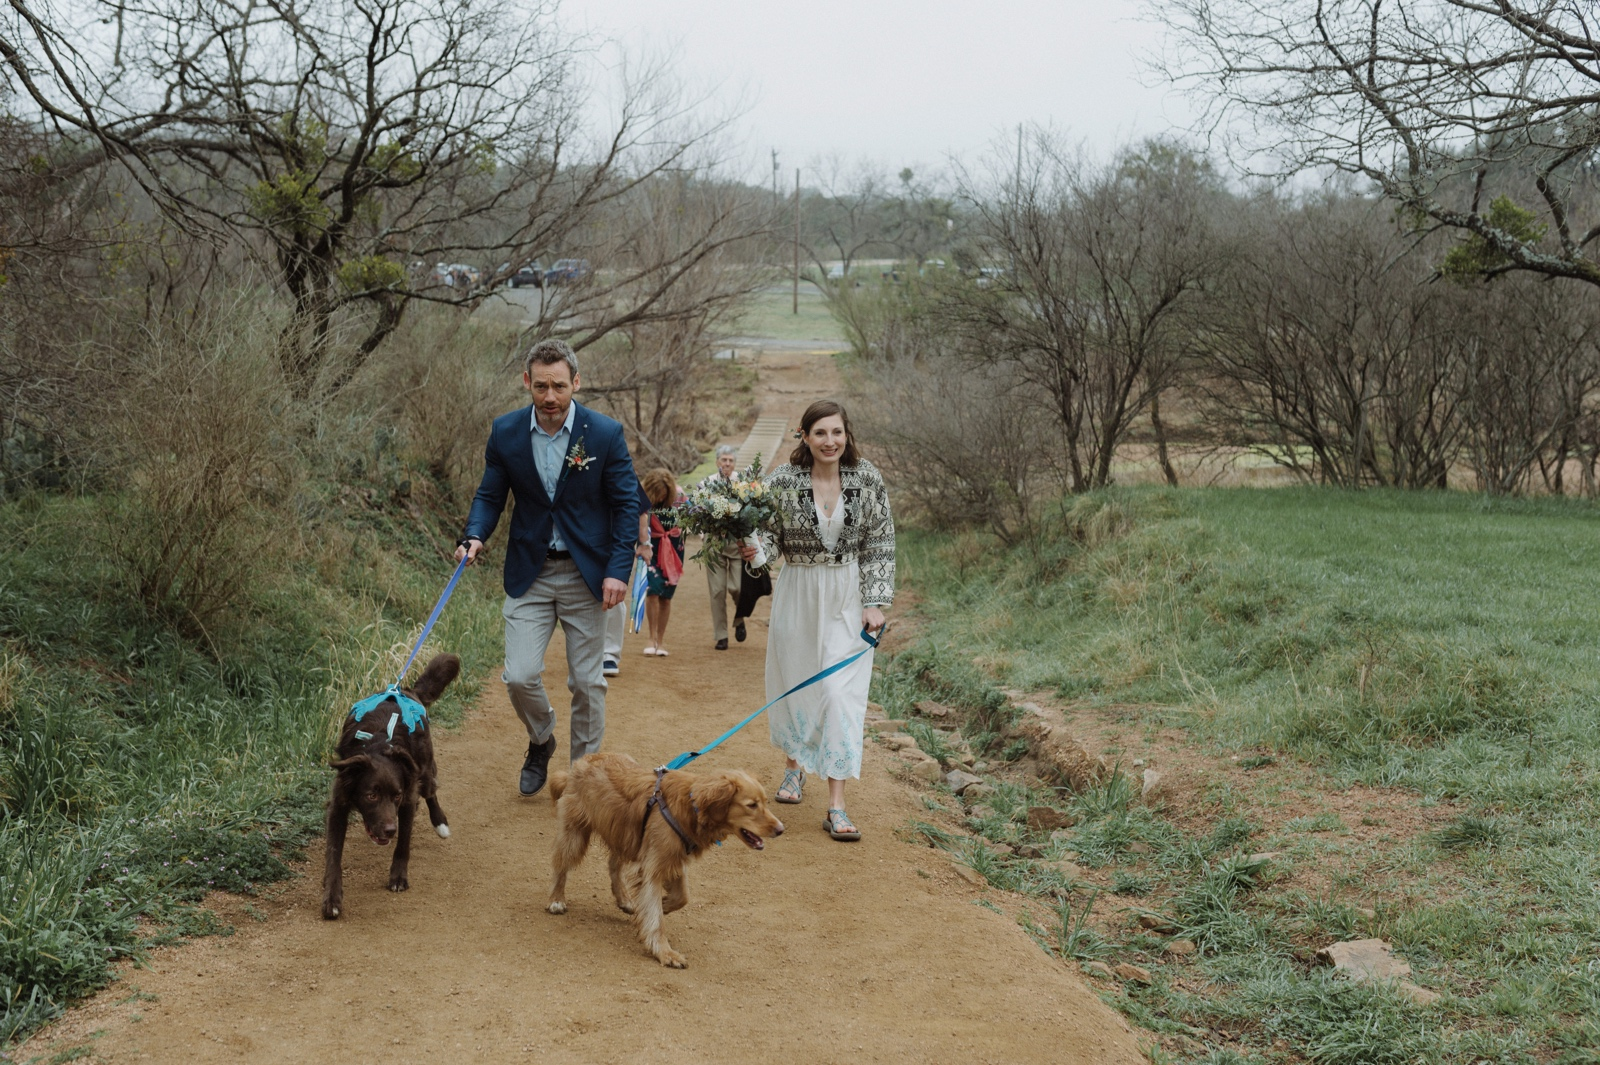 A foggy day for a dog-friendly hike up the trail in Enchanted Rock State Natural Area